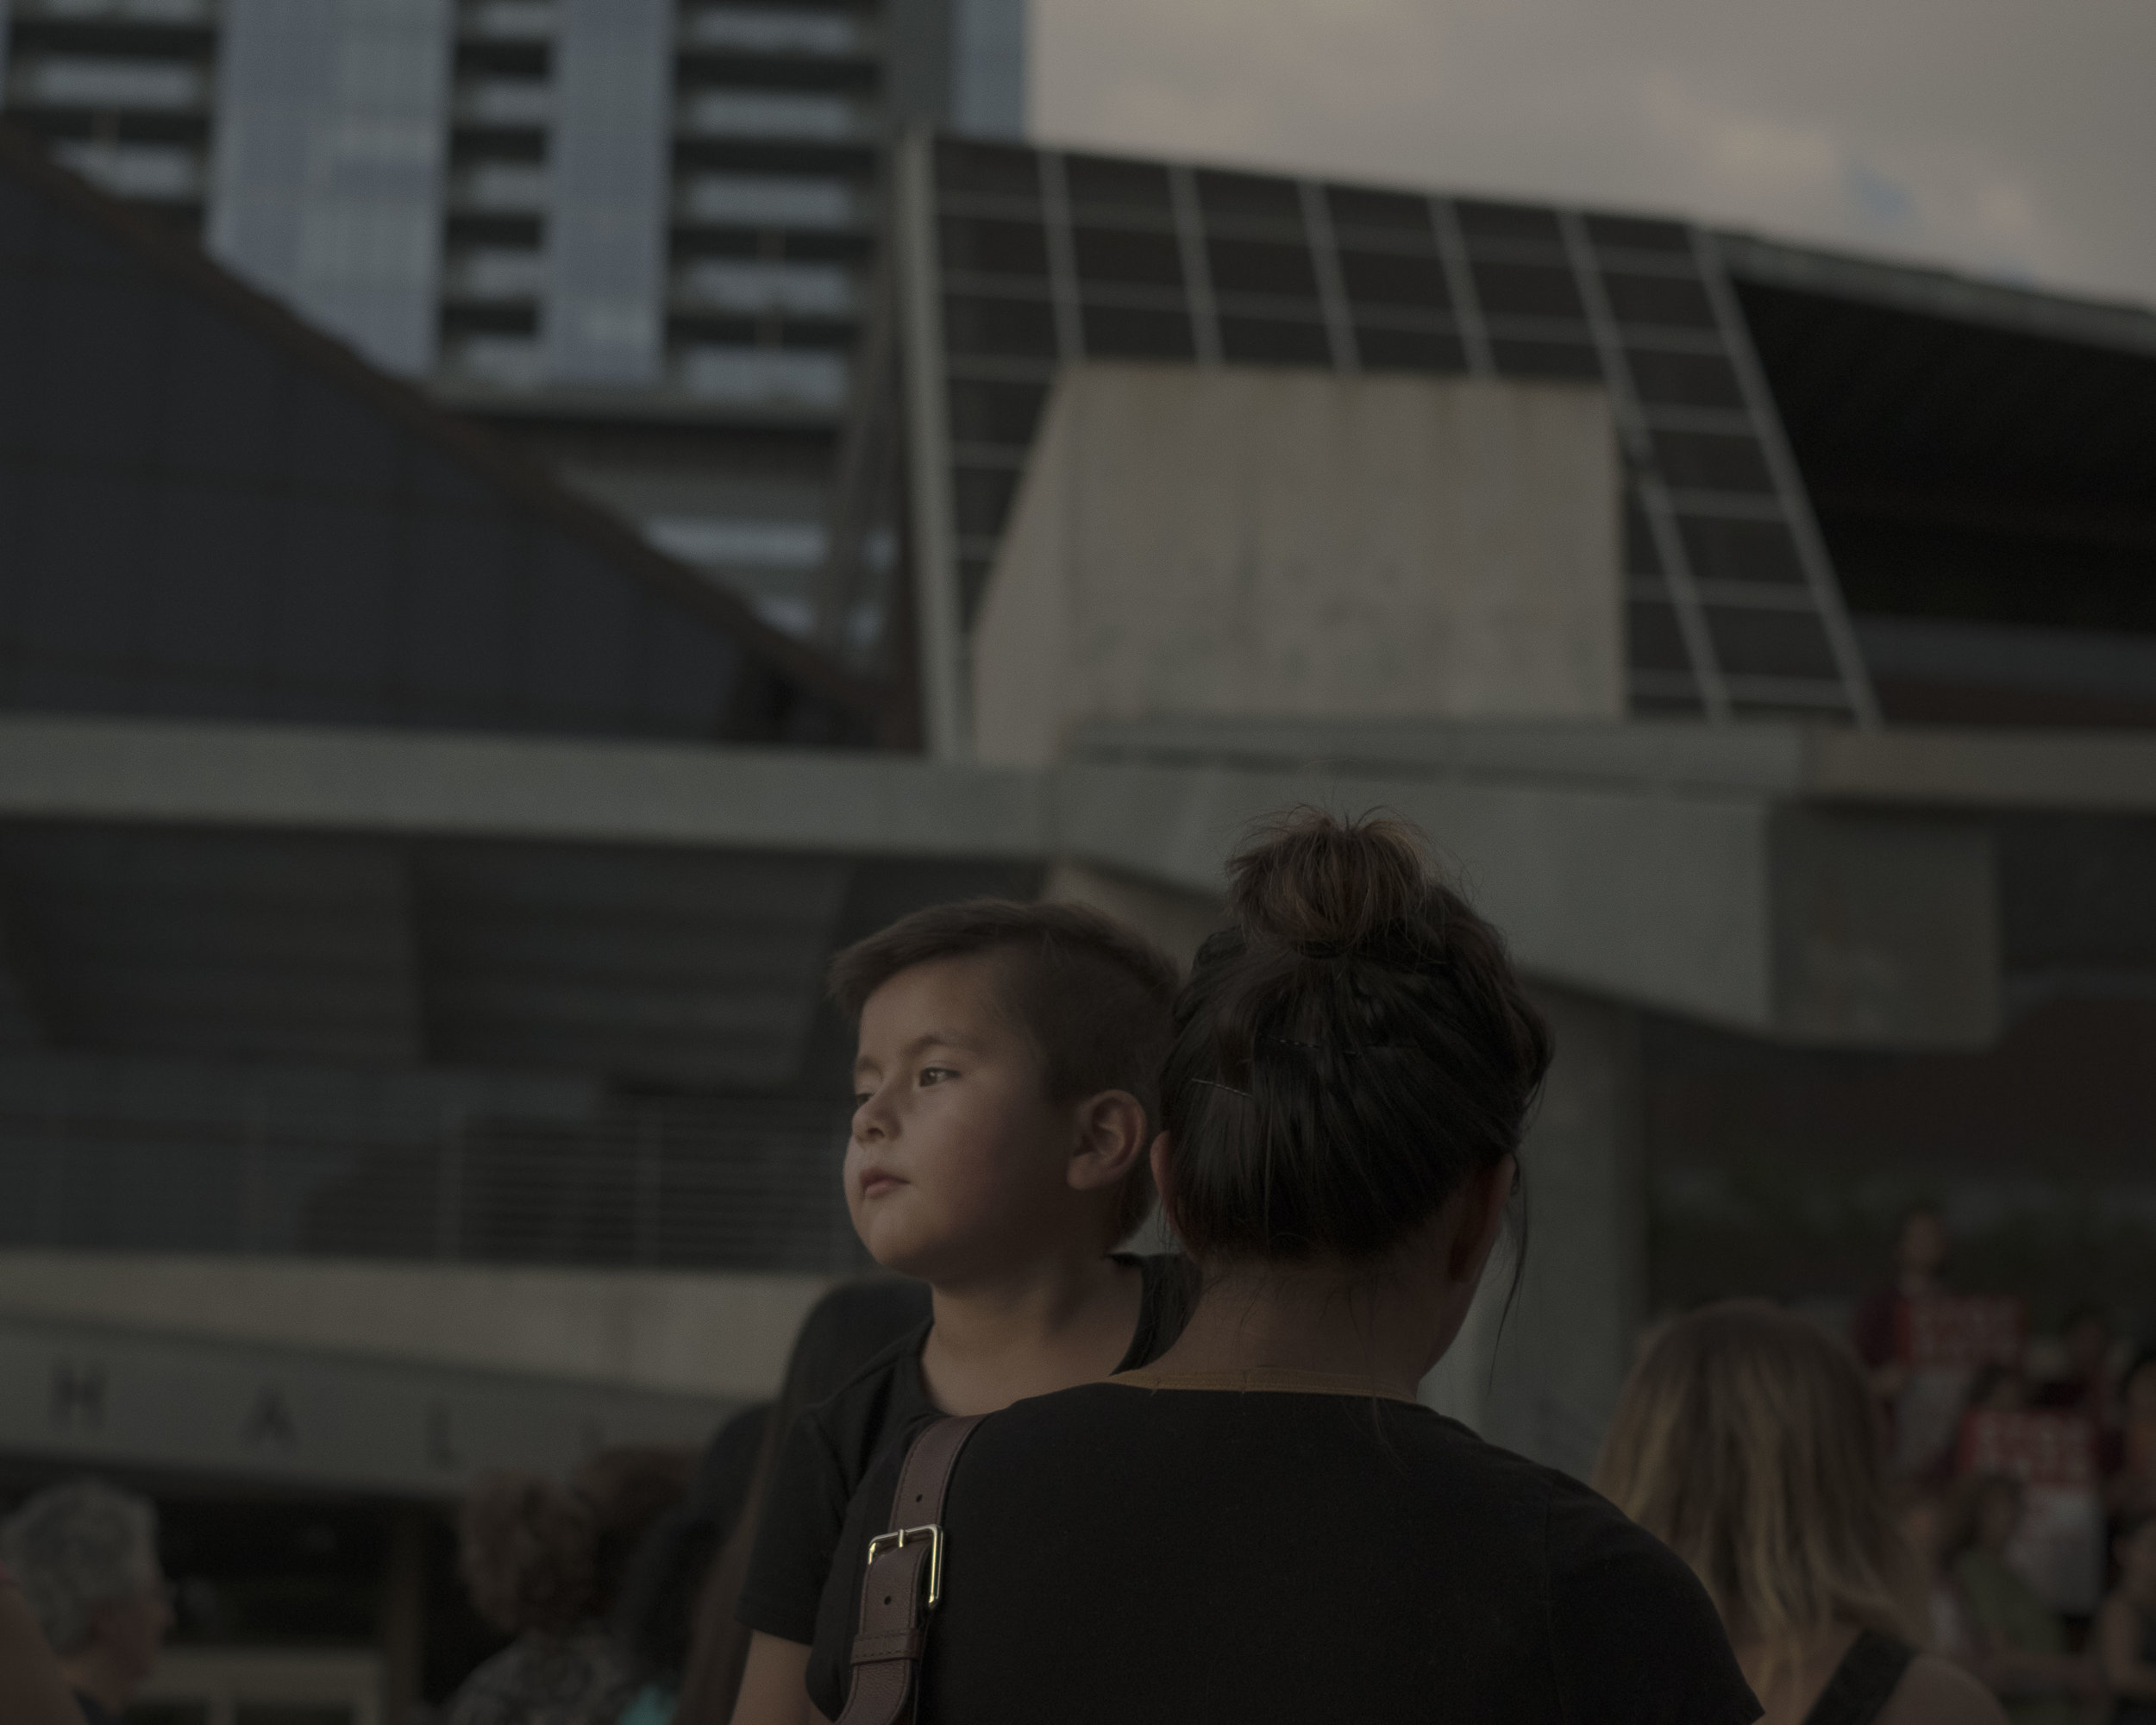 "A boy looks on during a demonstration protesting SB-4 in Austin, Texas on Aug. 31, 2017. Two nights before the September 1st deadline for S.B. 4, Orlando Garcia, a federal District Court judge in San Antonio, temporarily halted implementation of most parts of the bill. He deemed the bill ""unconstitutionally vague"" and blocked the parts requiring jail officials to honor all detainers. Image by Gabriella Demczuk."